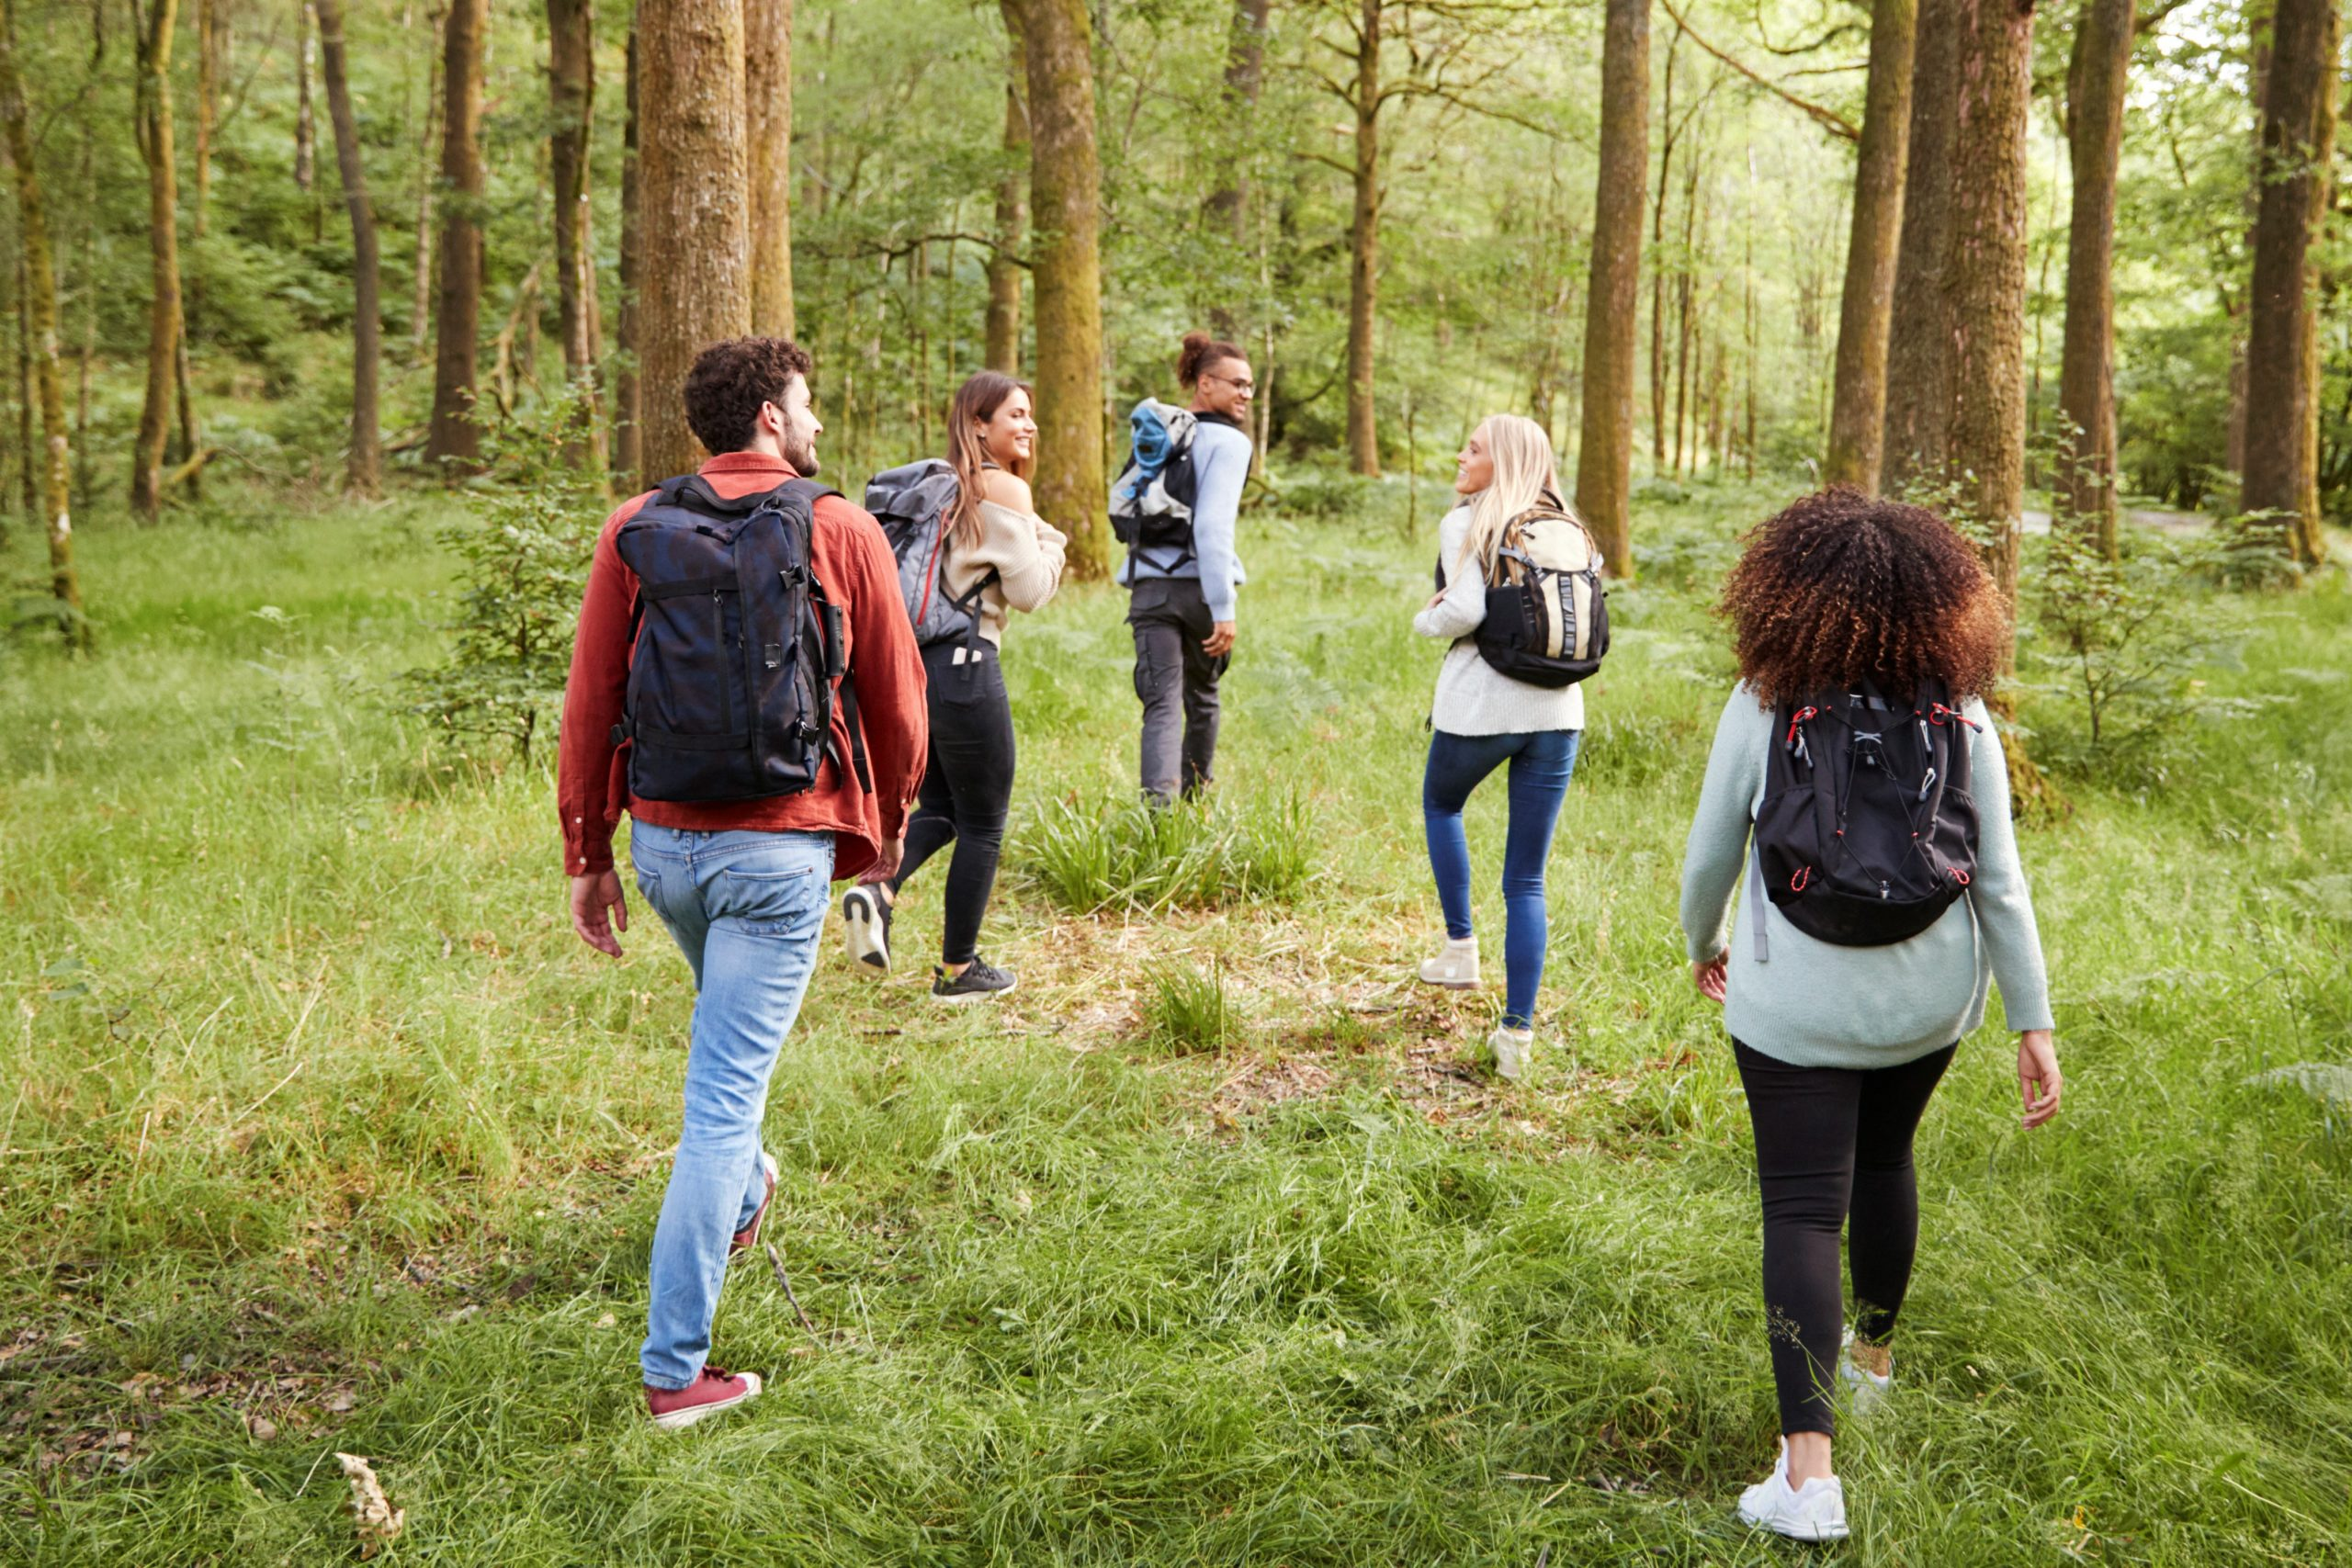 A multicultural group of young people walk together in a loose V shape through a forest, a little distance between each person. They are wearing back packs and looking at one another as they walk away from the camera.